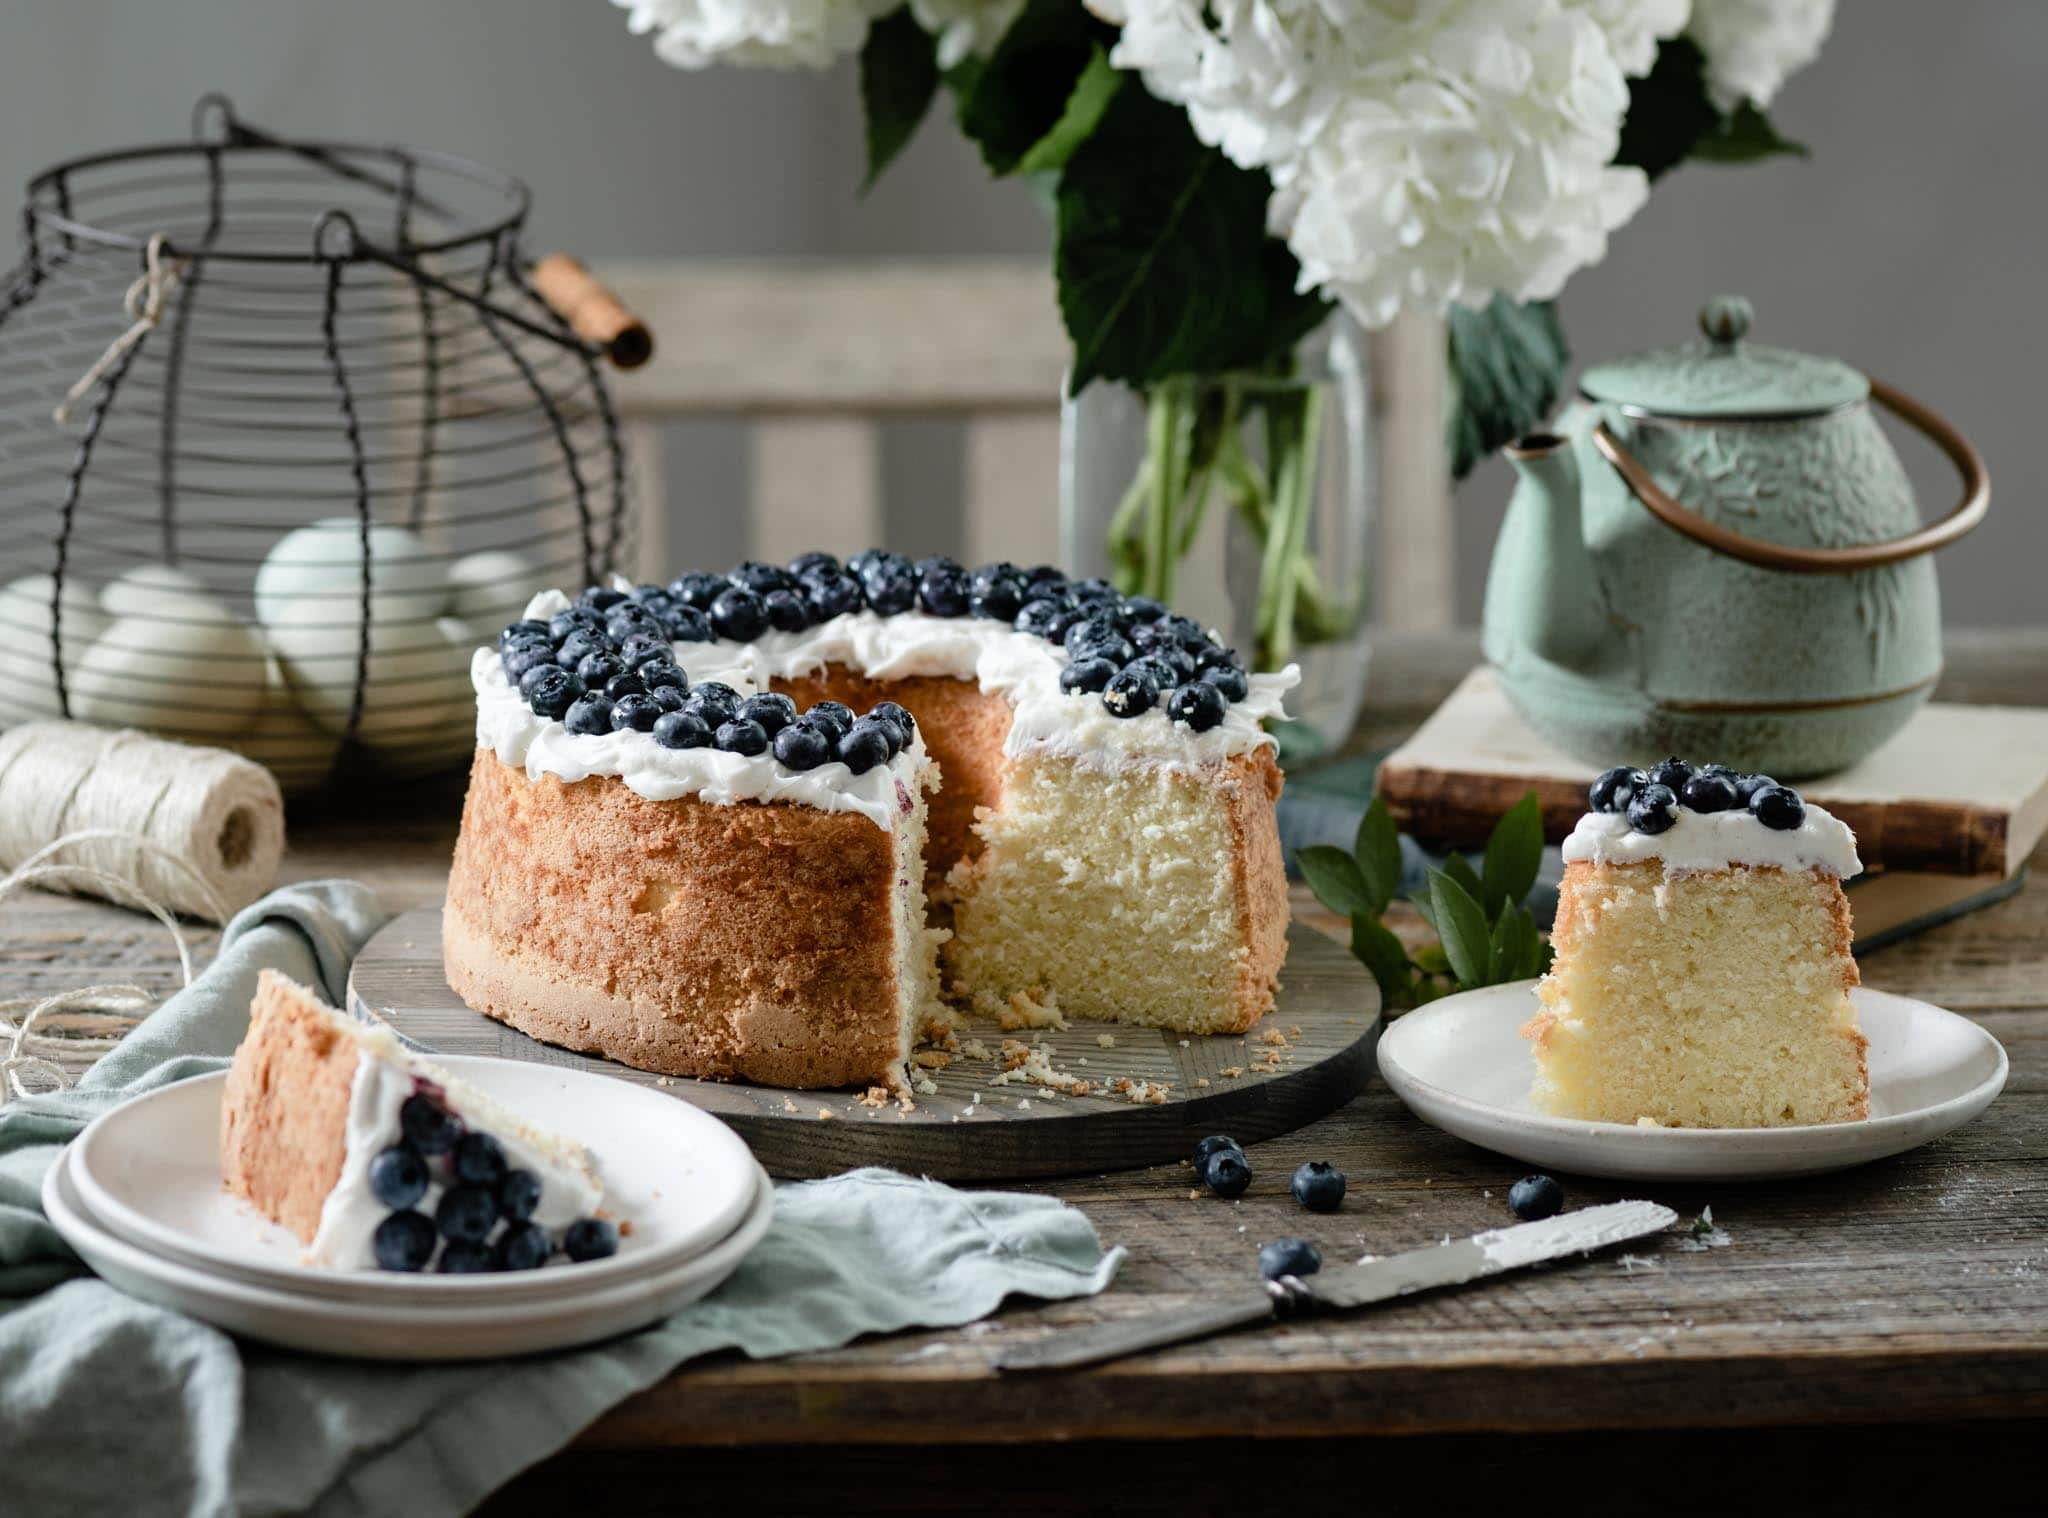 Sliced vanilla pound cake topped with blueberries.